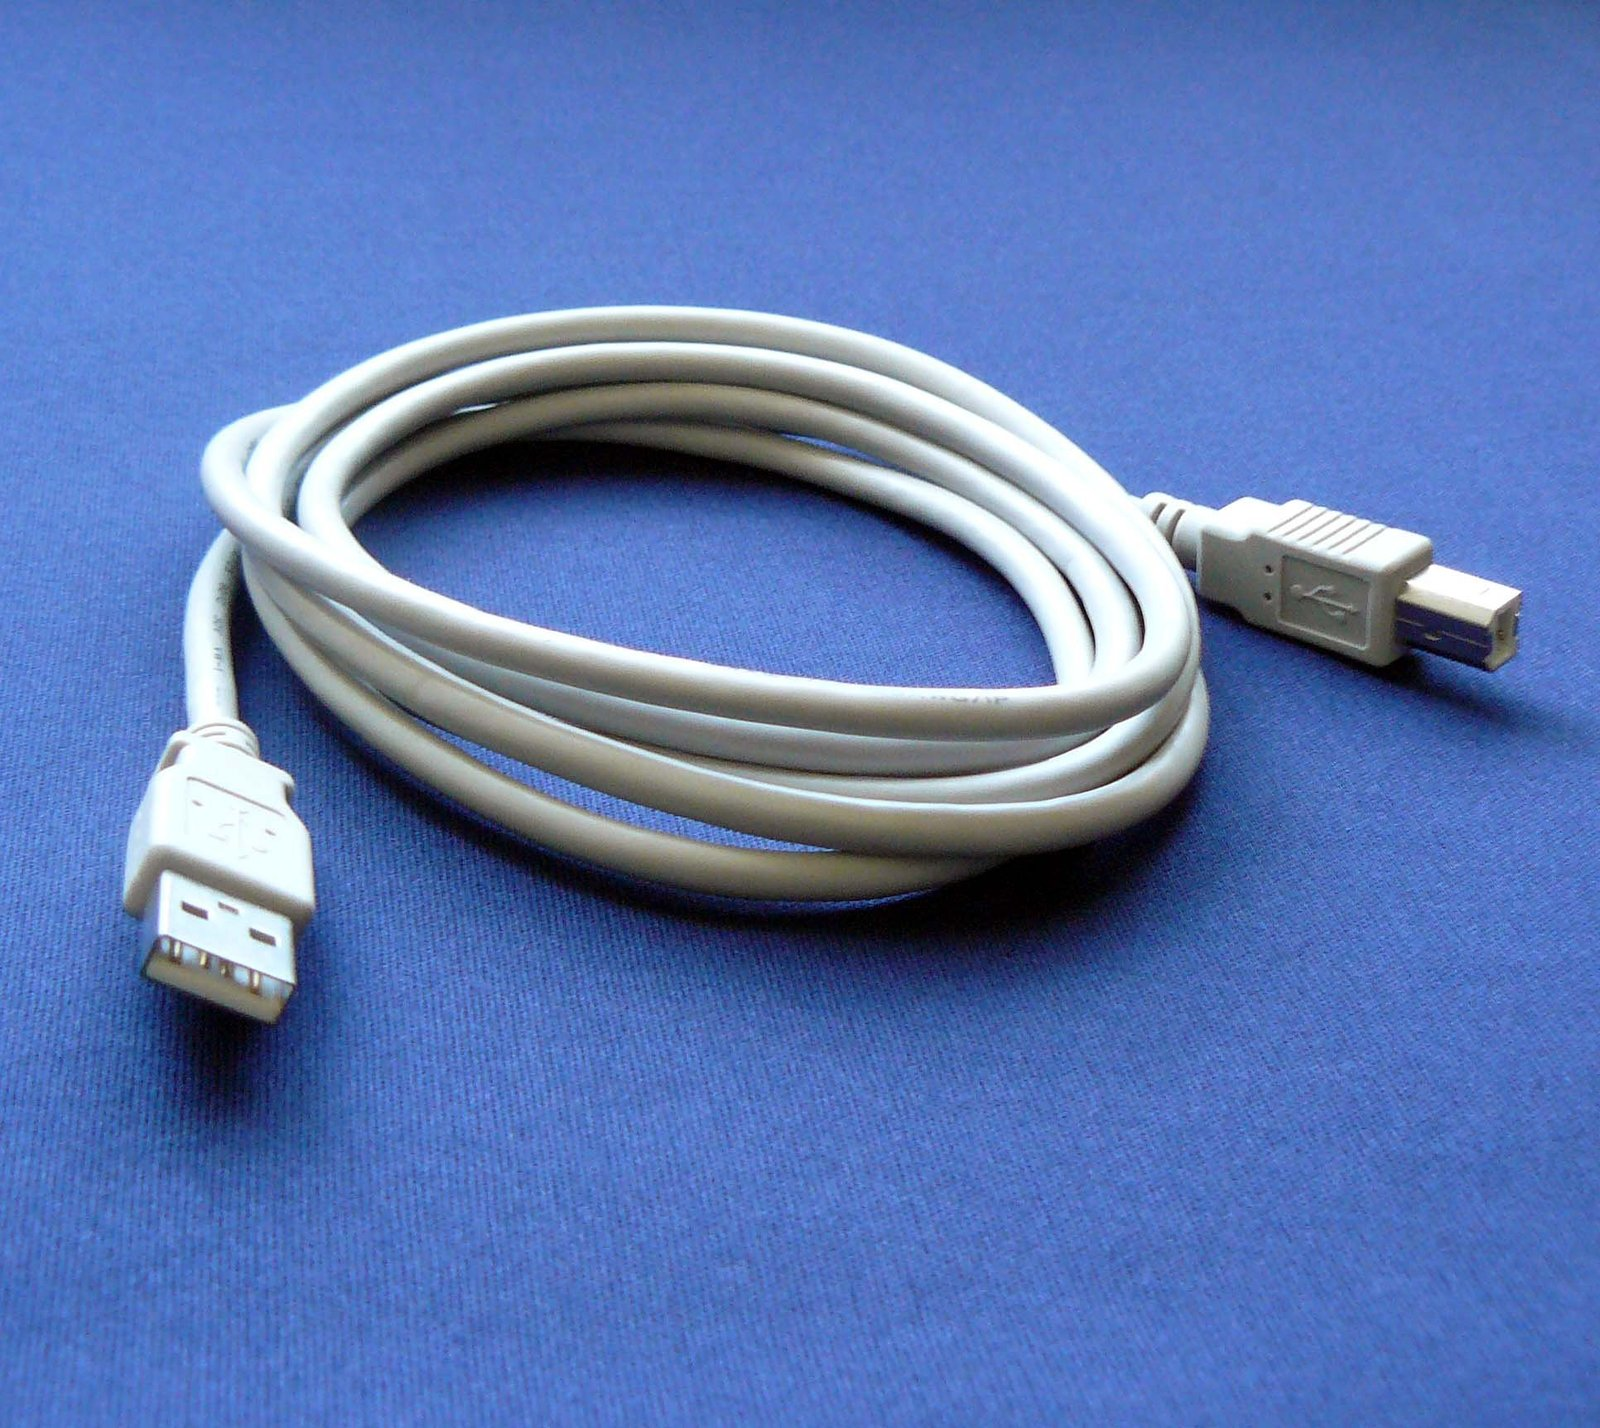 Primary image for HP LaserJet 1020 Printer Compatible USB 2.0 Cable Cord for PC, Notebook, Macb...